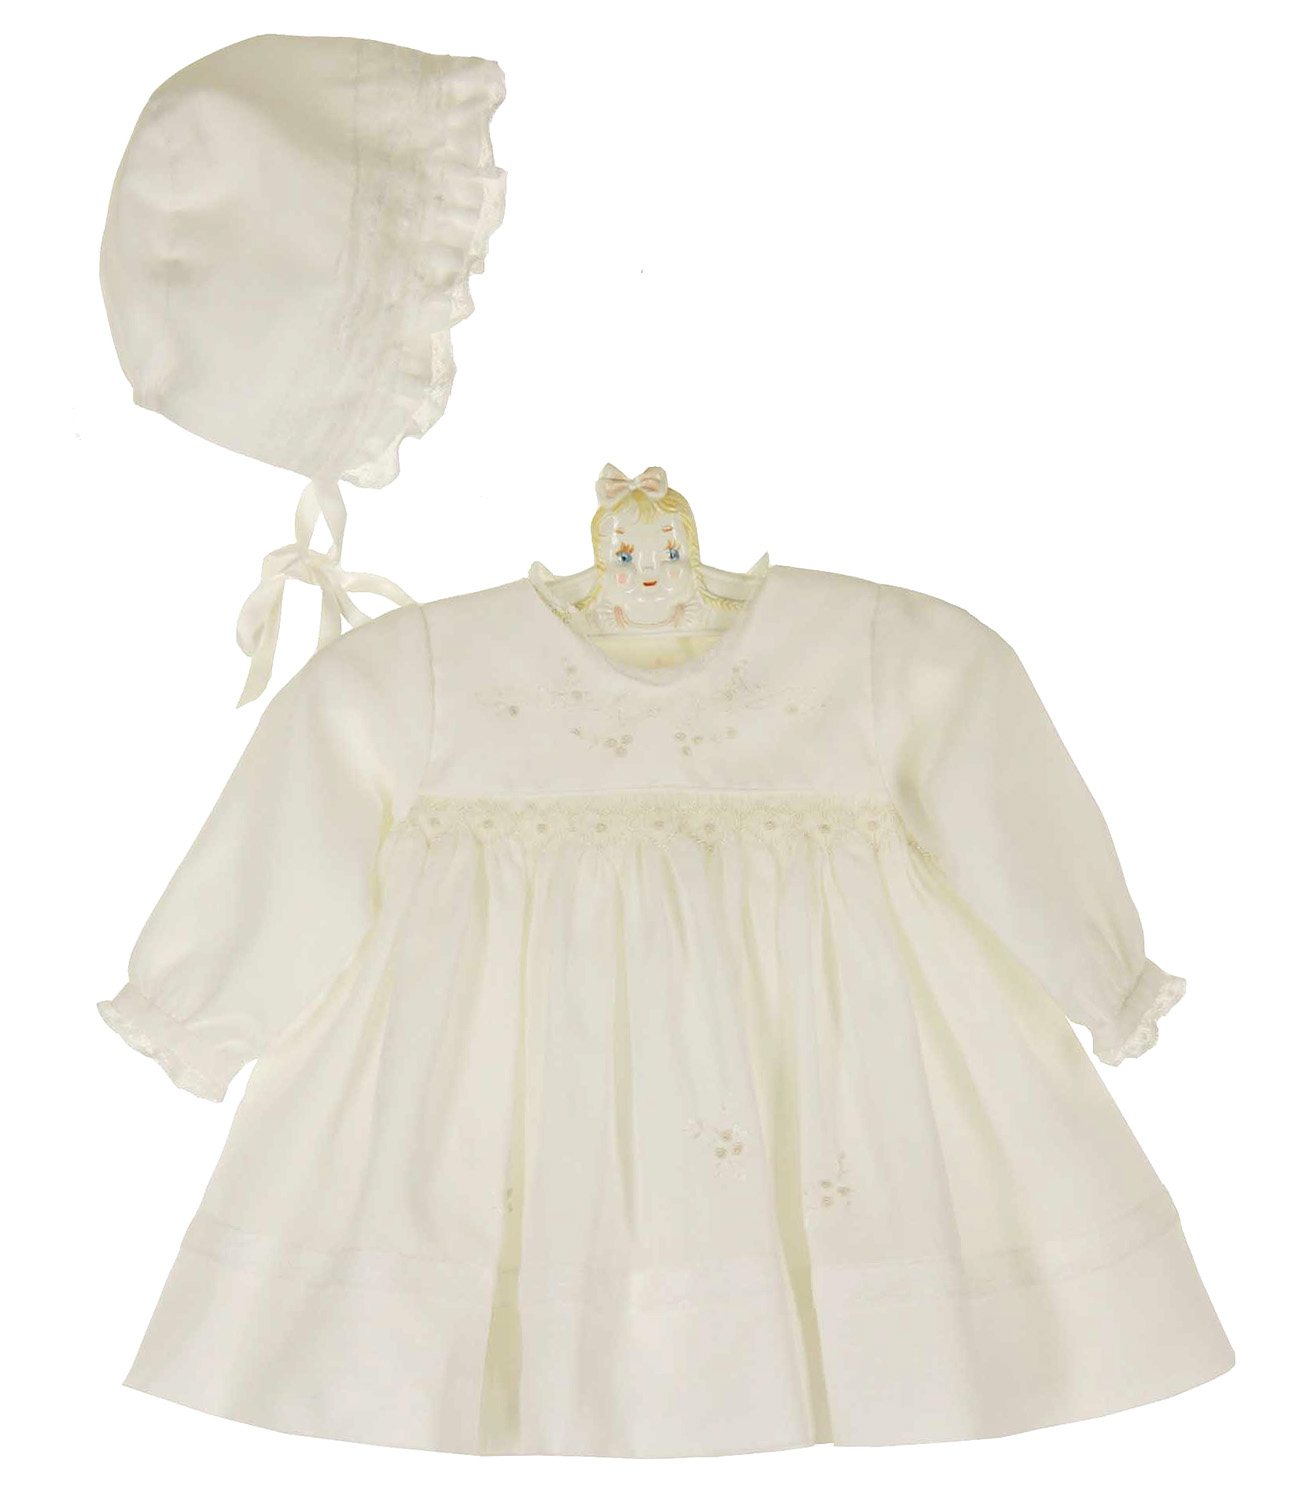 Sarah Louise ivory voile smocked dress with matching bonnet ivory